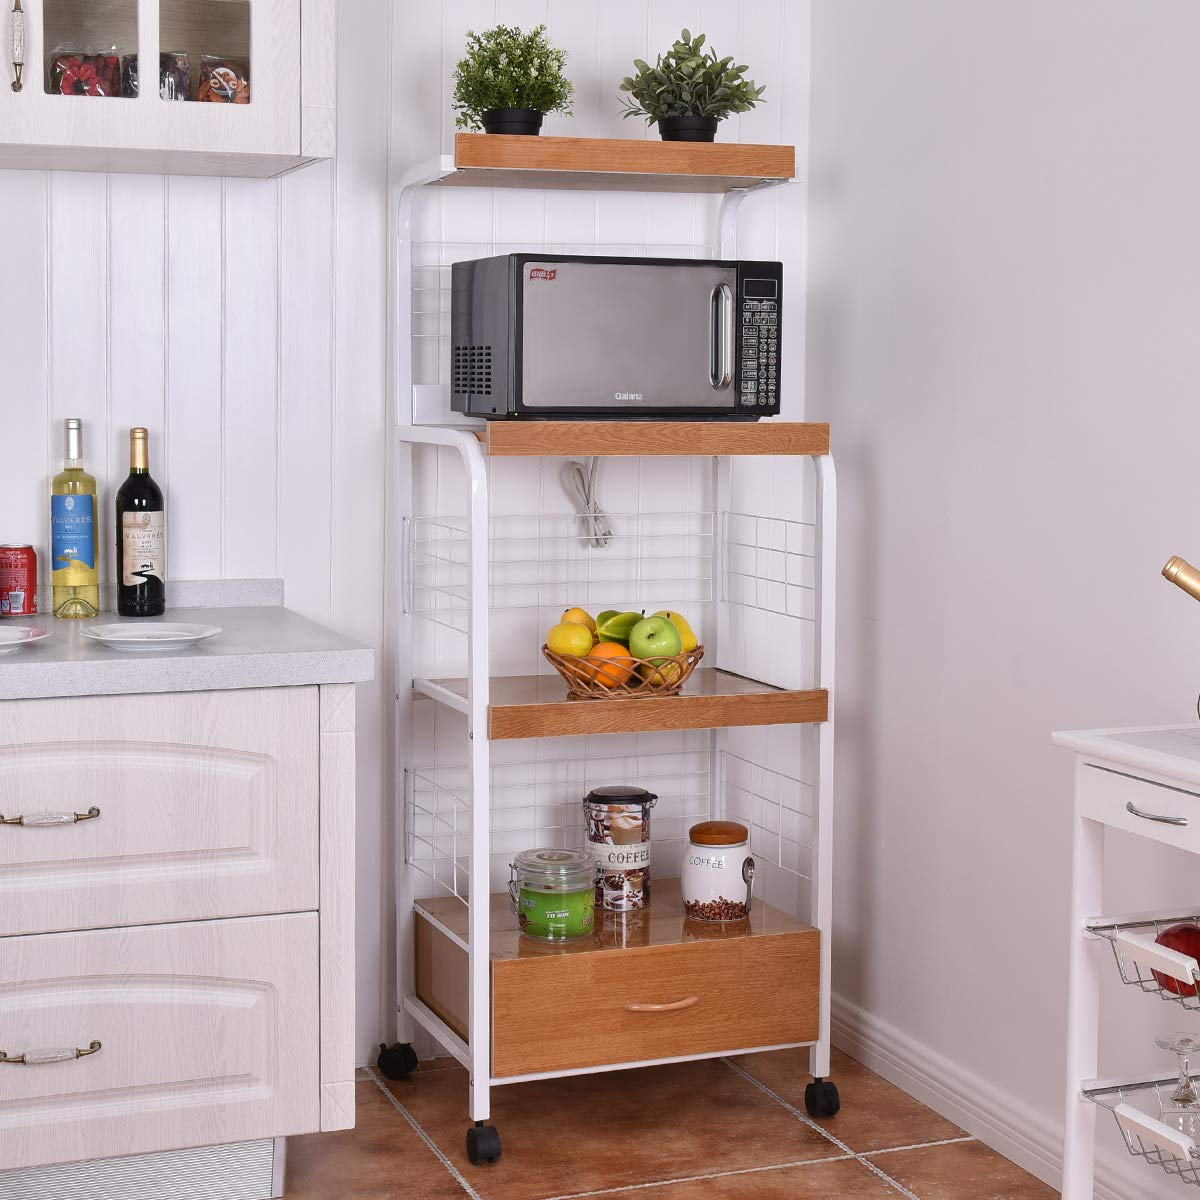 Giantex Microwave Cart Kitchen Baker's Rack Microwave Oven Stand Rolling Kitchen Storage Cart Utensils Organizer w/Electric Outlet and Drawer by Giantex (Image #2)